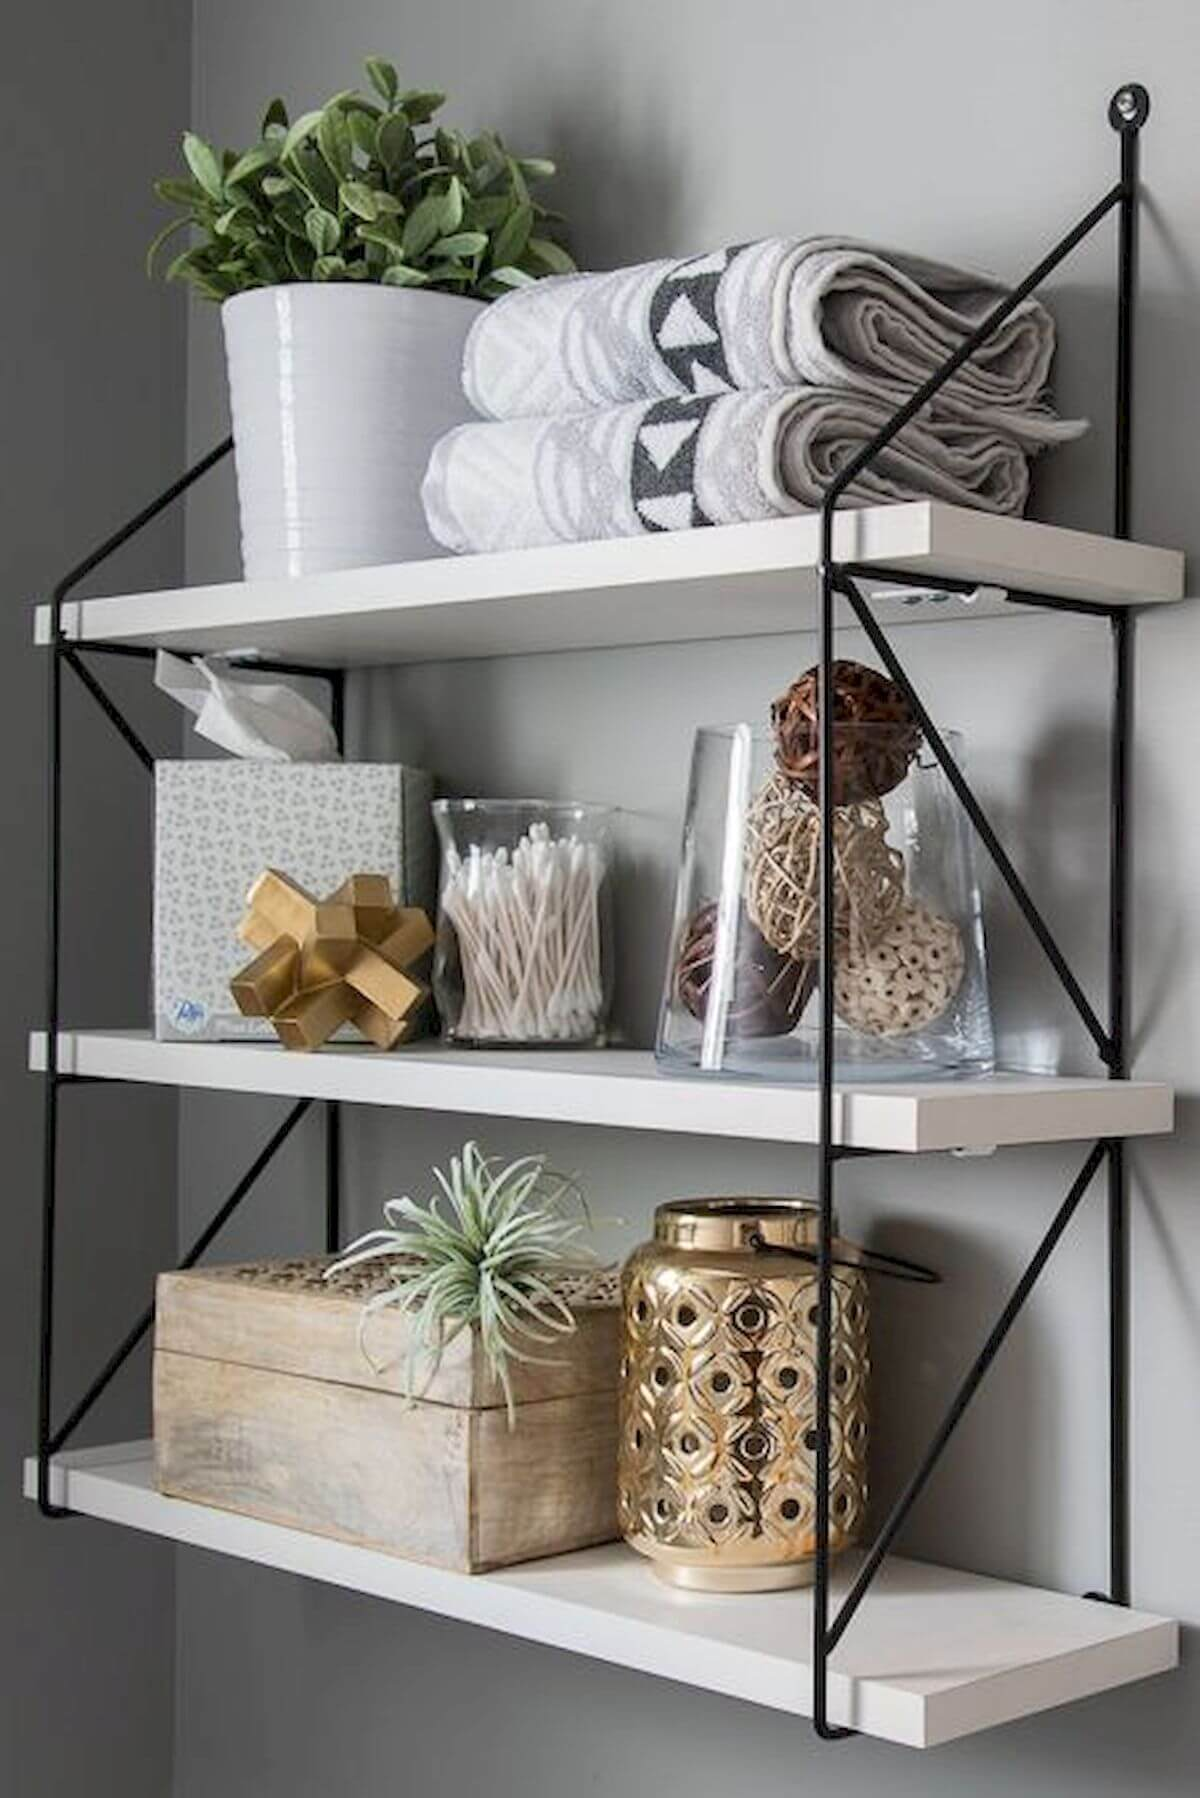 Simple White Shelves and Stylish Wire Frame